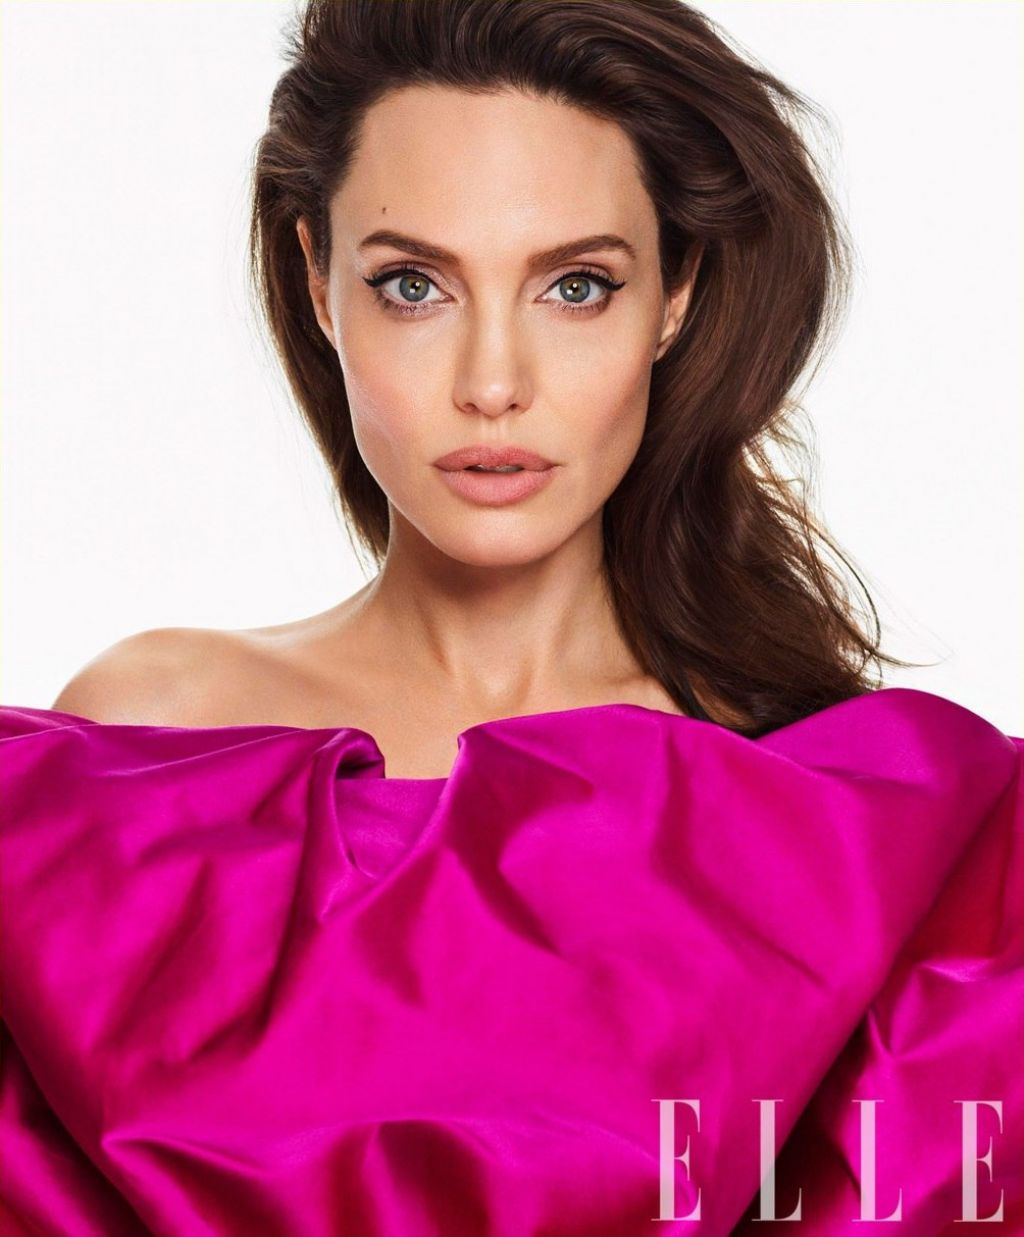 http://celebmafia.com/wp-content/uploads/2018/02/angelina-jolie-photoshoot-for-elle-march-2018-5.jpg